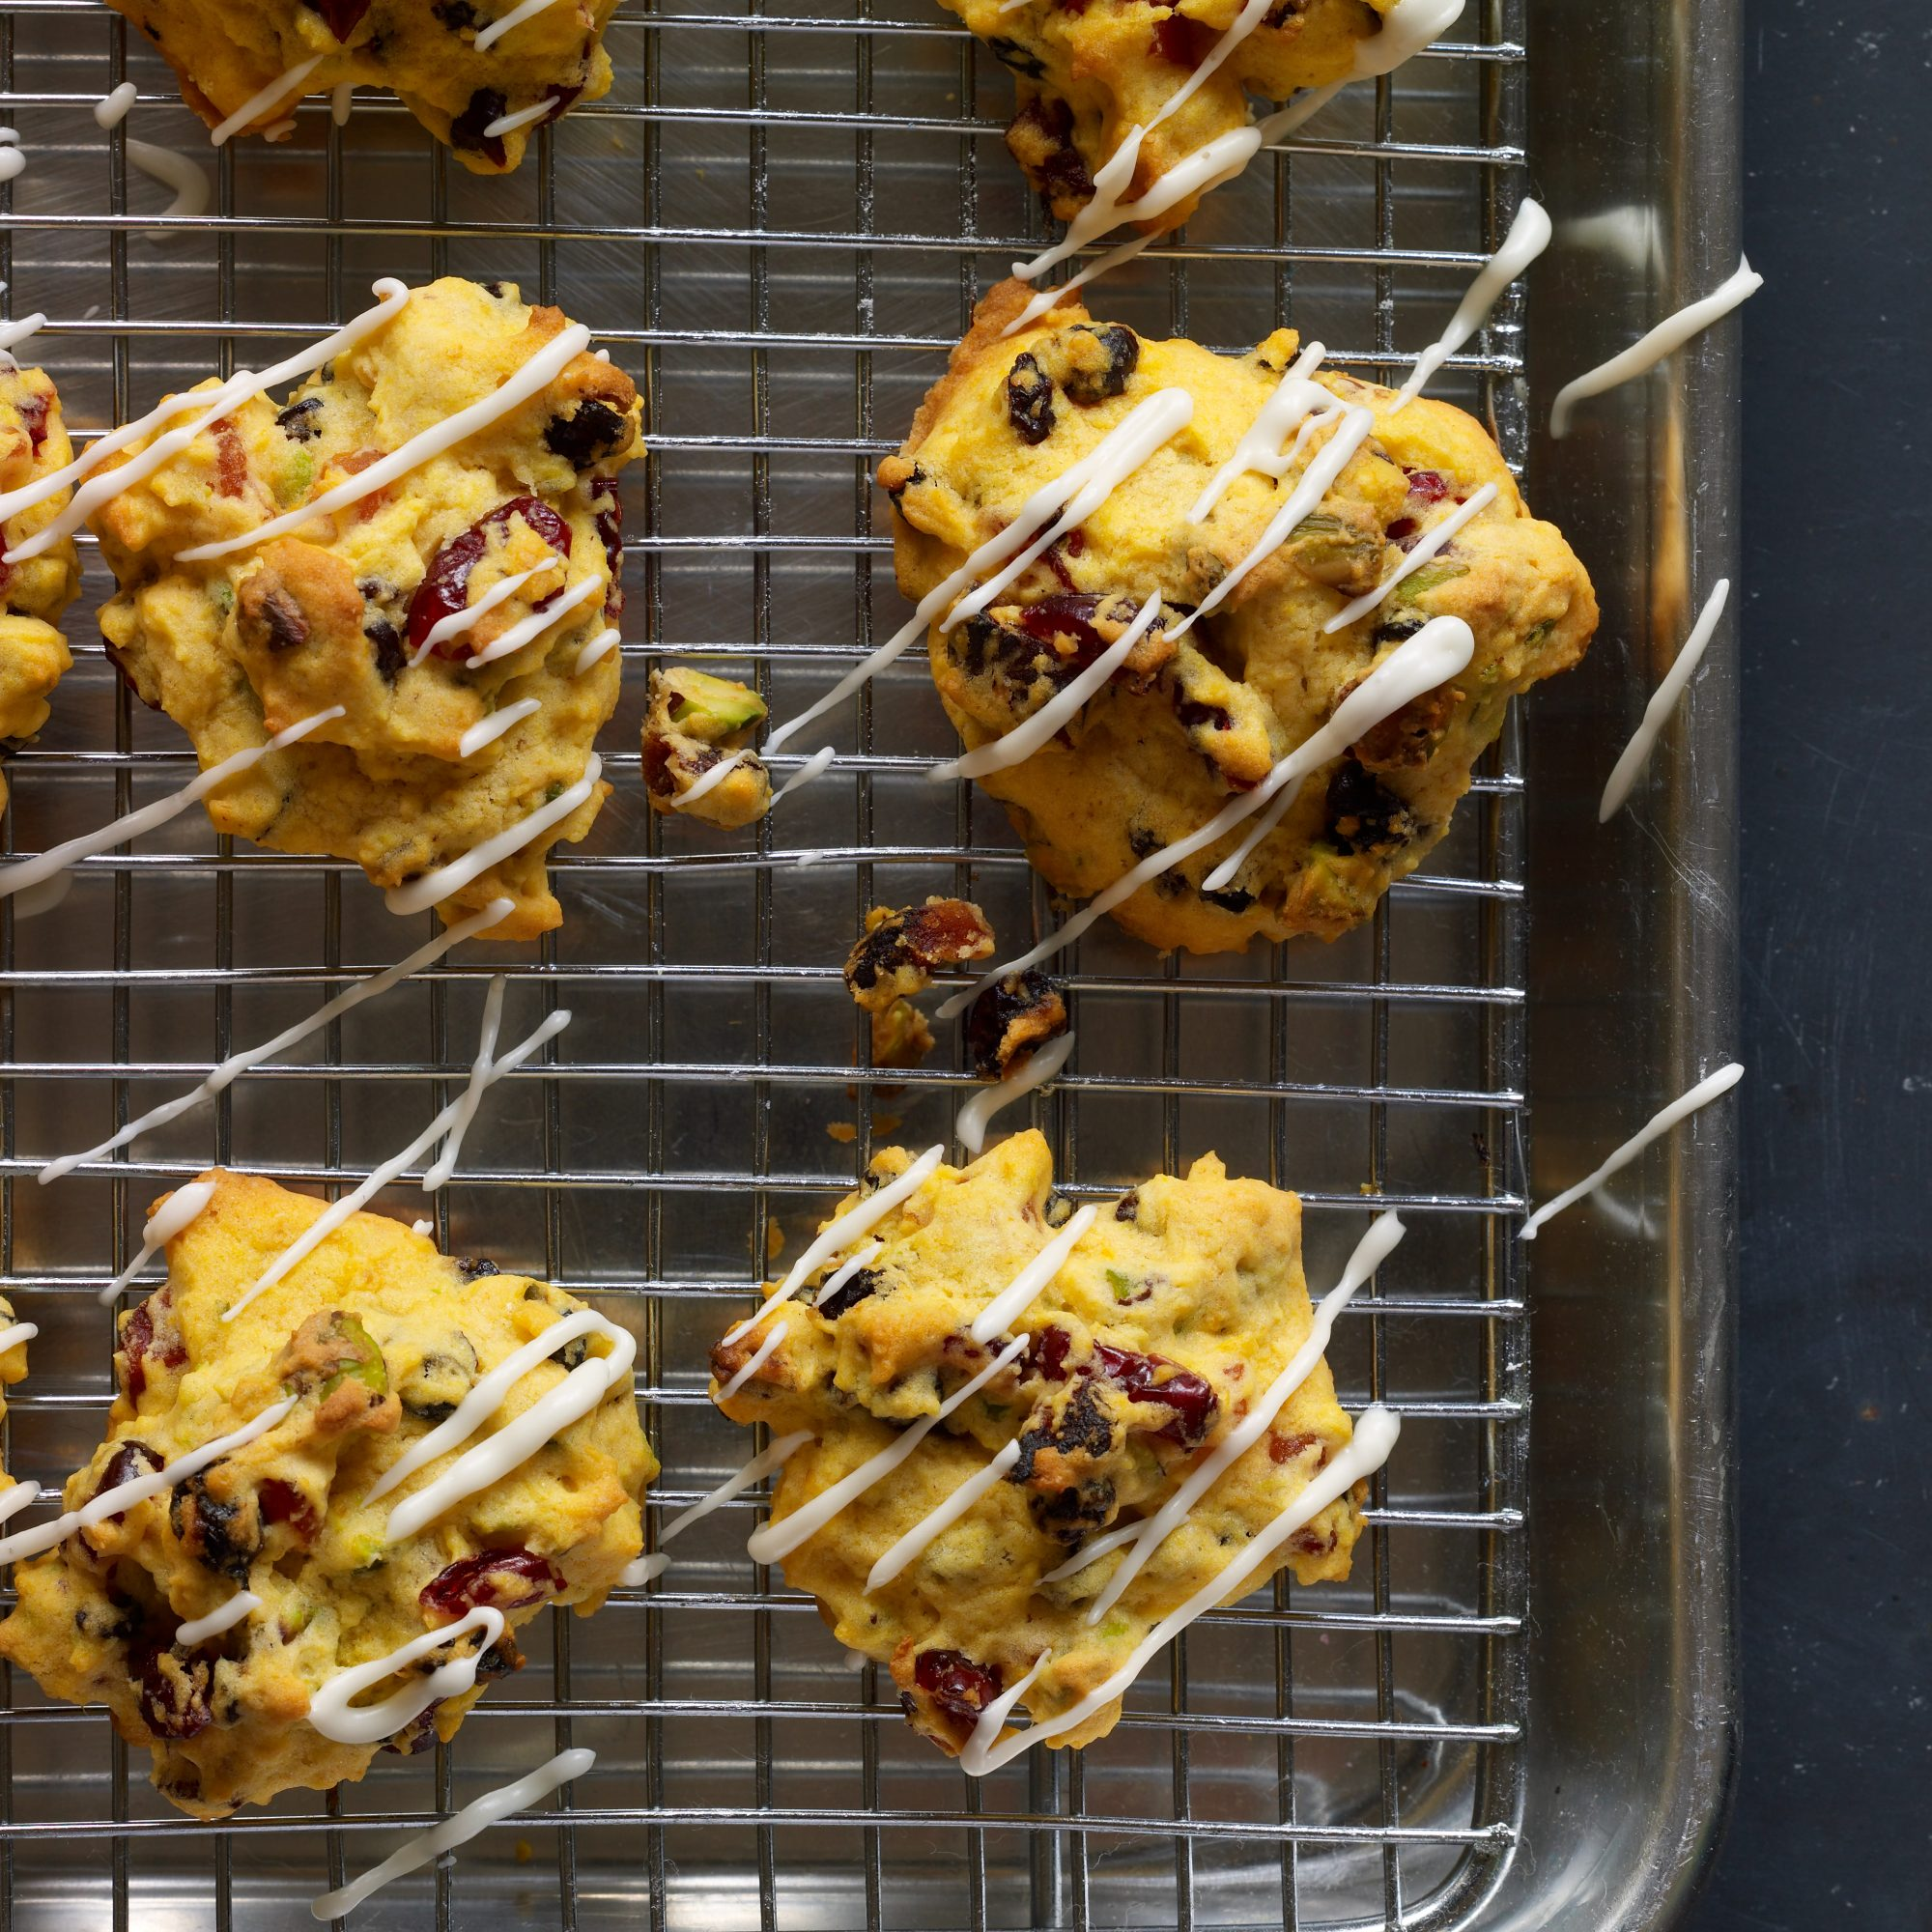 201109-r-pumpkin-cookies-dried-fruit-pistachios.jpg